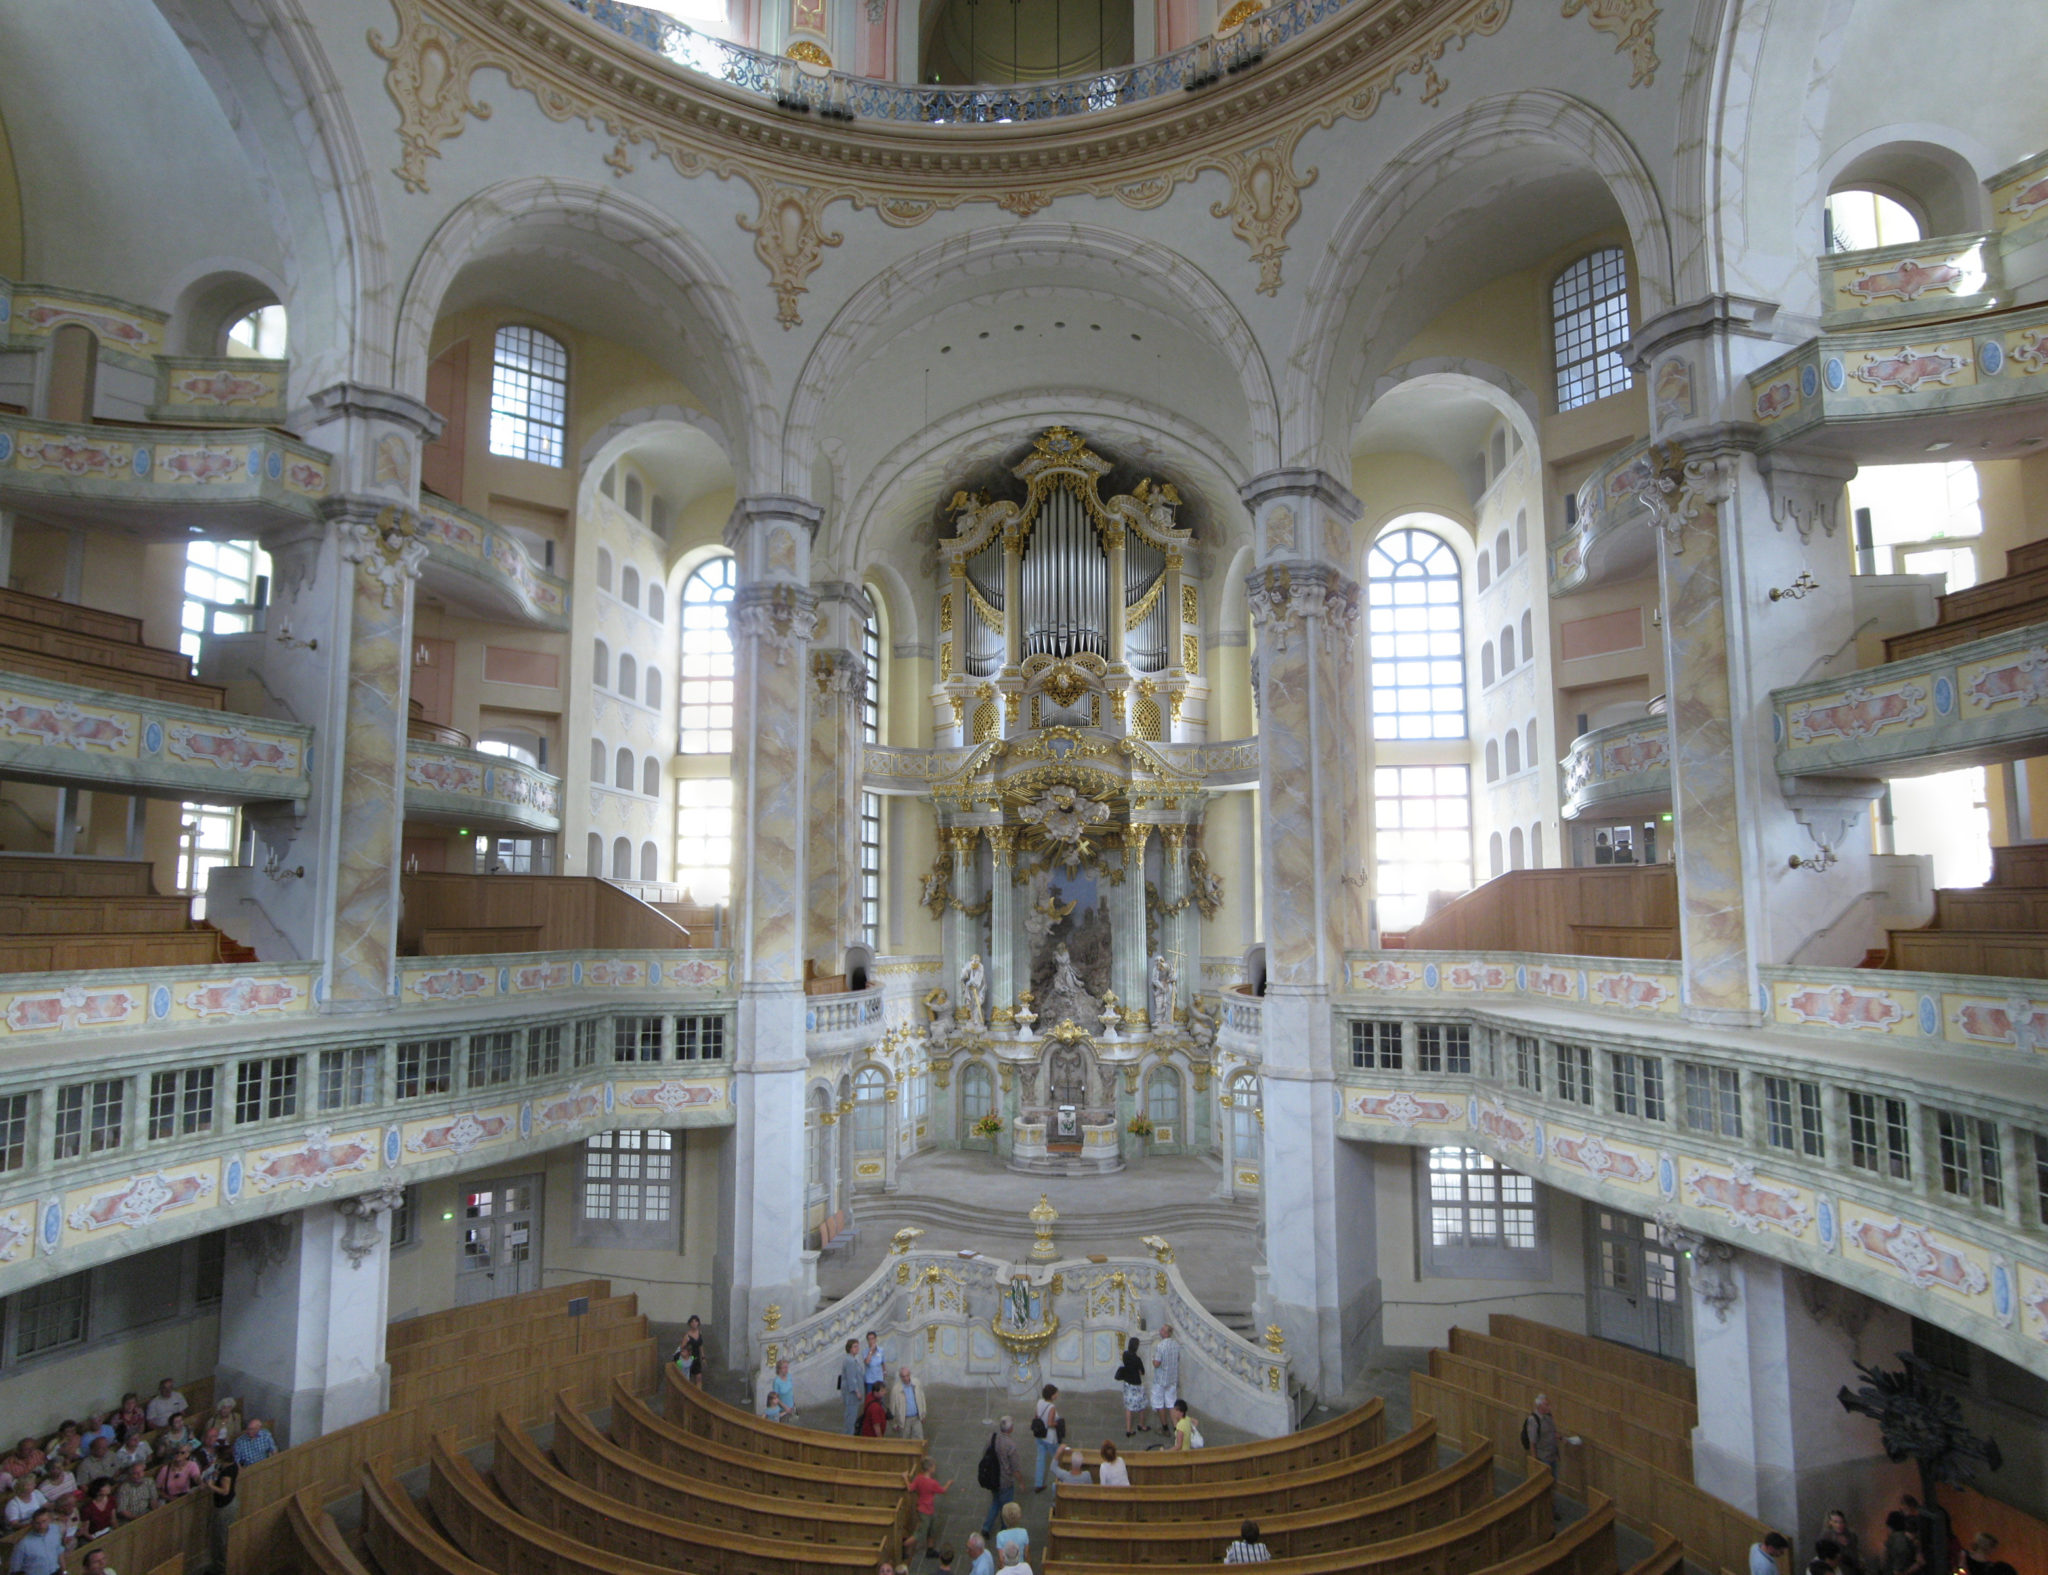 Frauenkirche_interior_2008_001-Frauenkirche_interior_2008_009, picture from internet